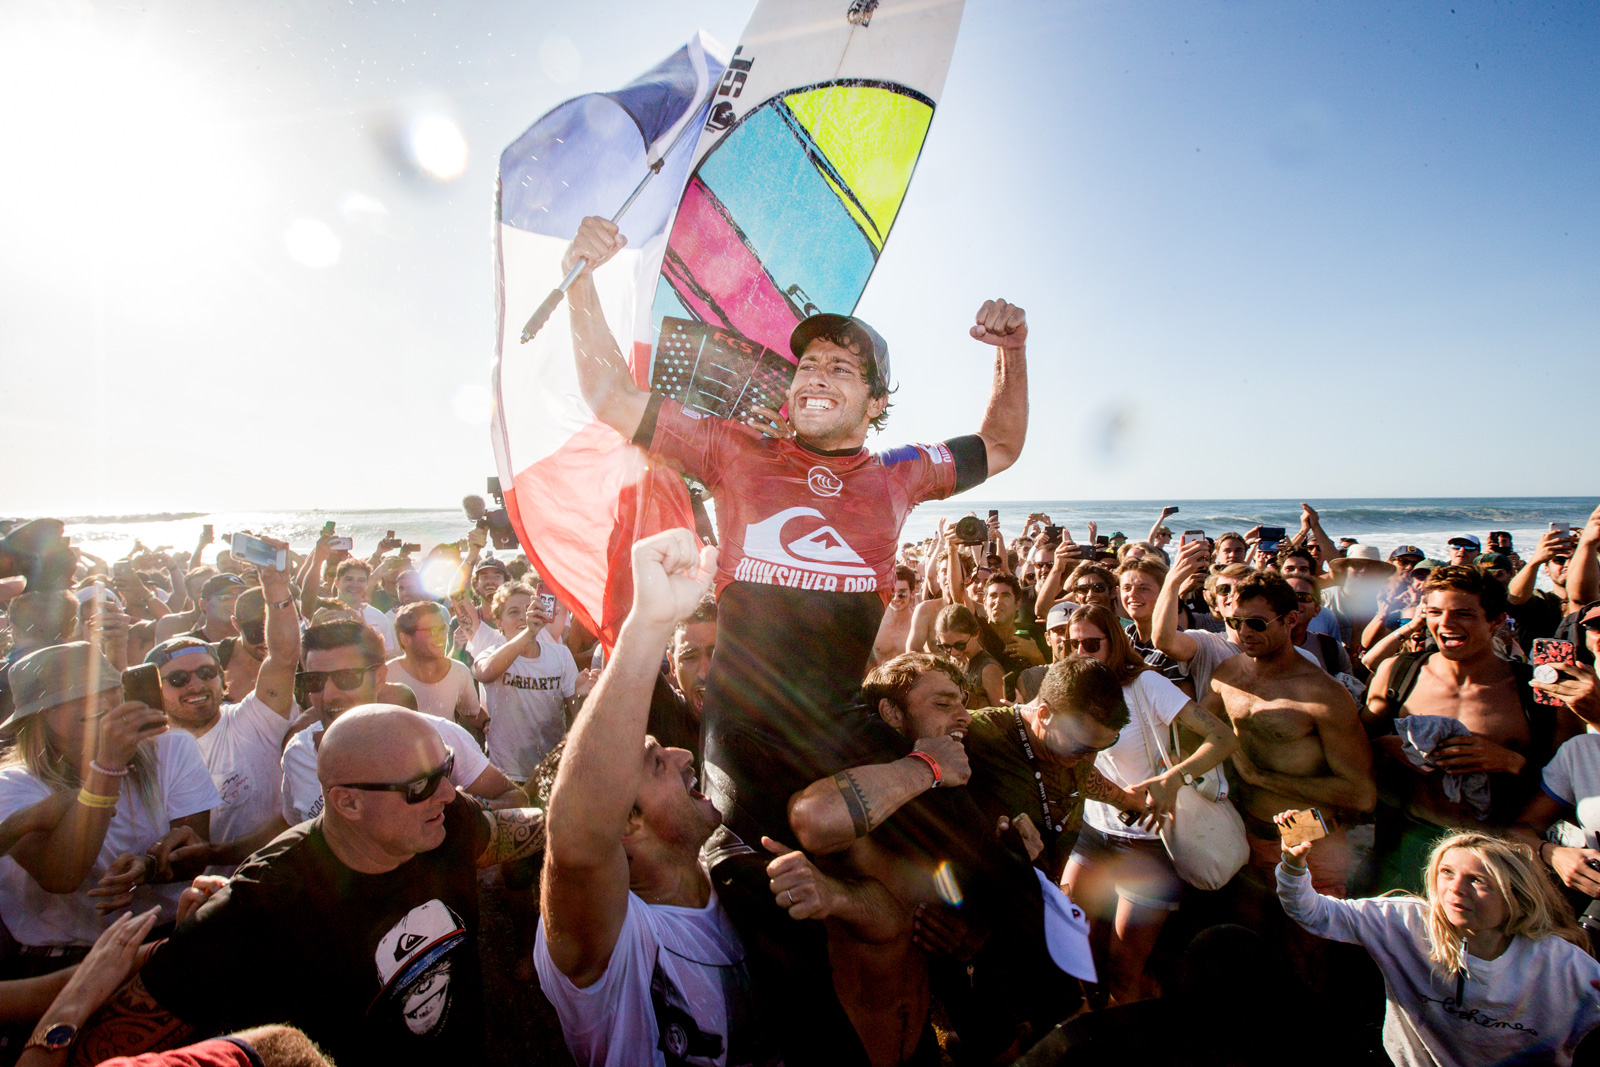 Jeremy Flores Quiksilver Pro Winning Barrel Close Up